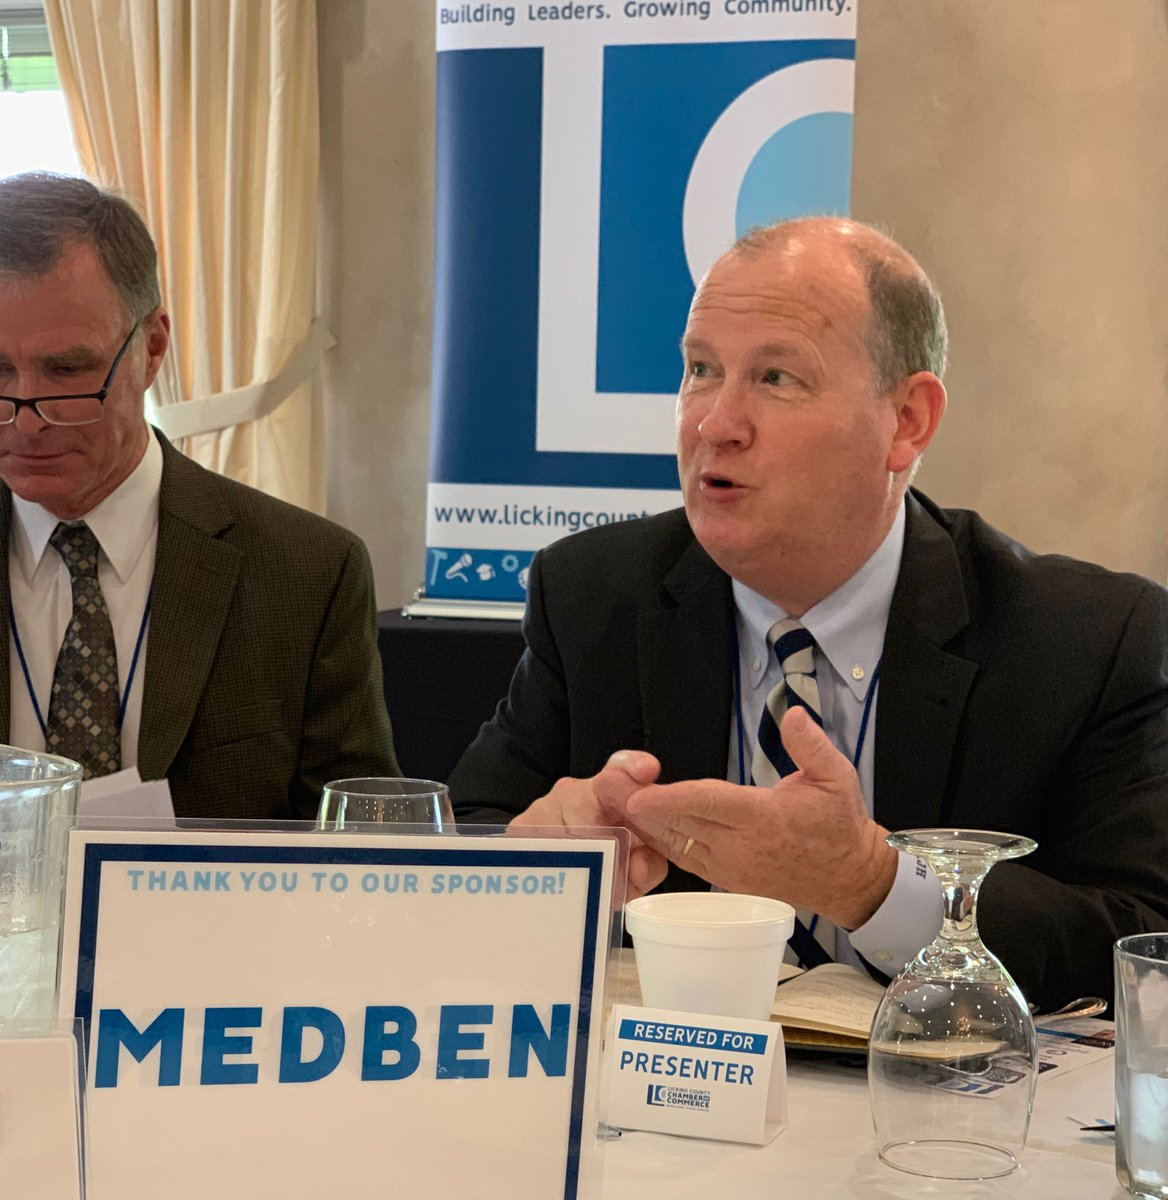 MedBen President & CEO Kurt Harden at Local Leaders Breakfast